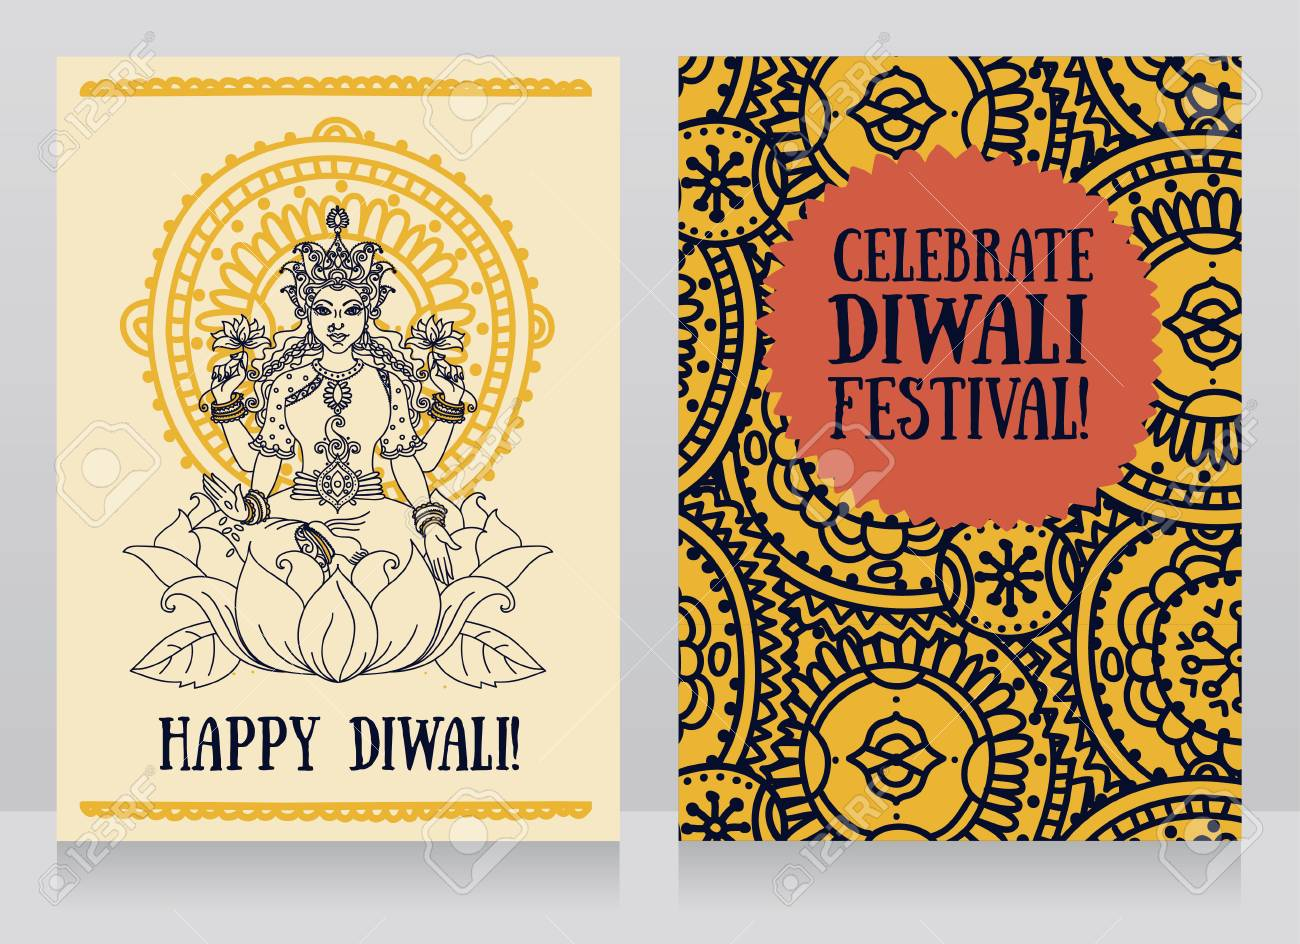 Beautiful greeting cards for diwali festival with indian goddess beautiful greeting cards for diwali festival with indian goddess lakshmi and colorful ornament vector illustration m4hsunfo